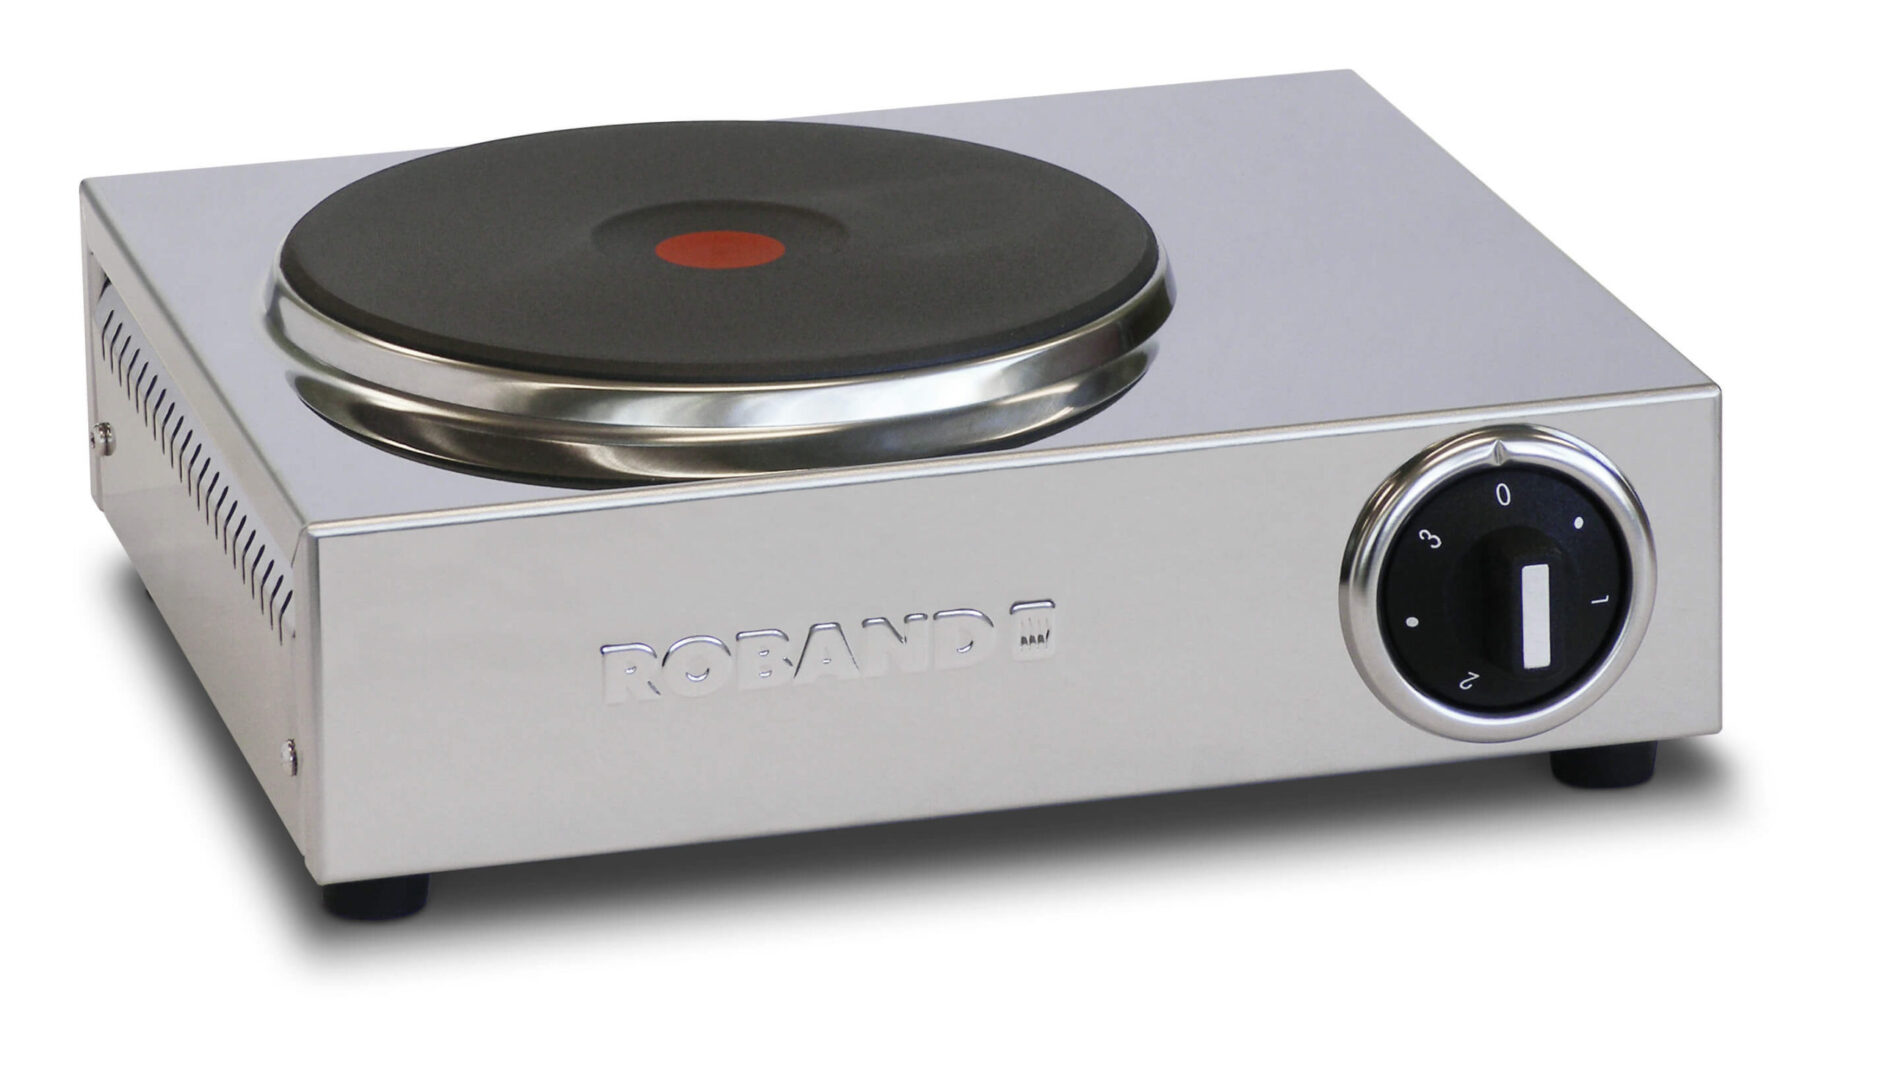 Roband Boiling Hot Plates 190mm